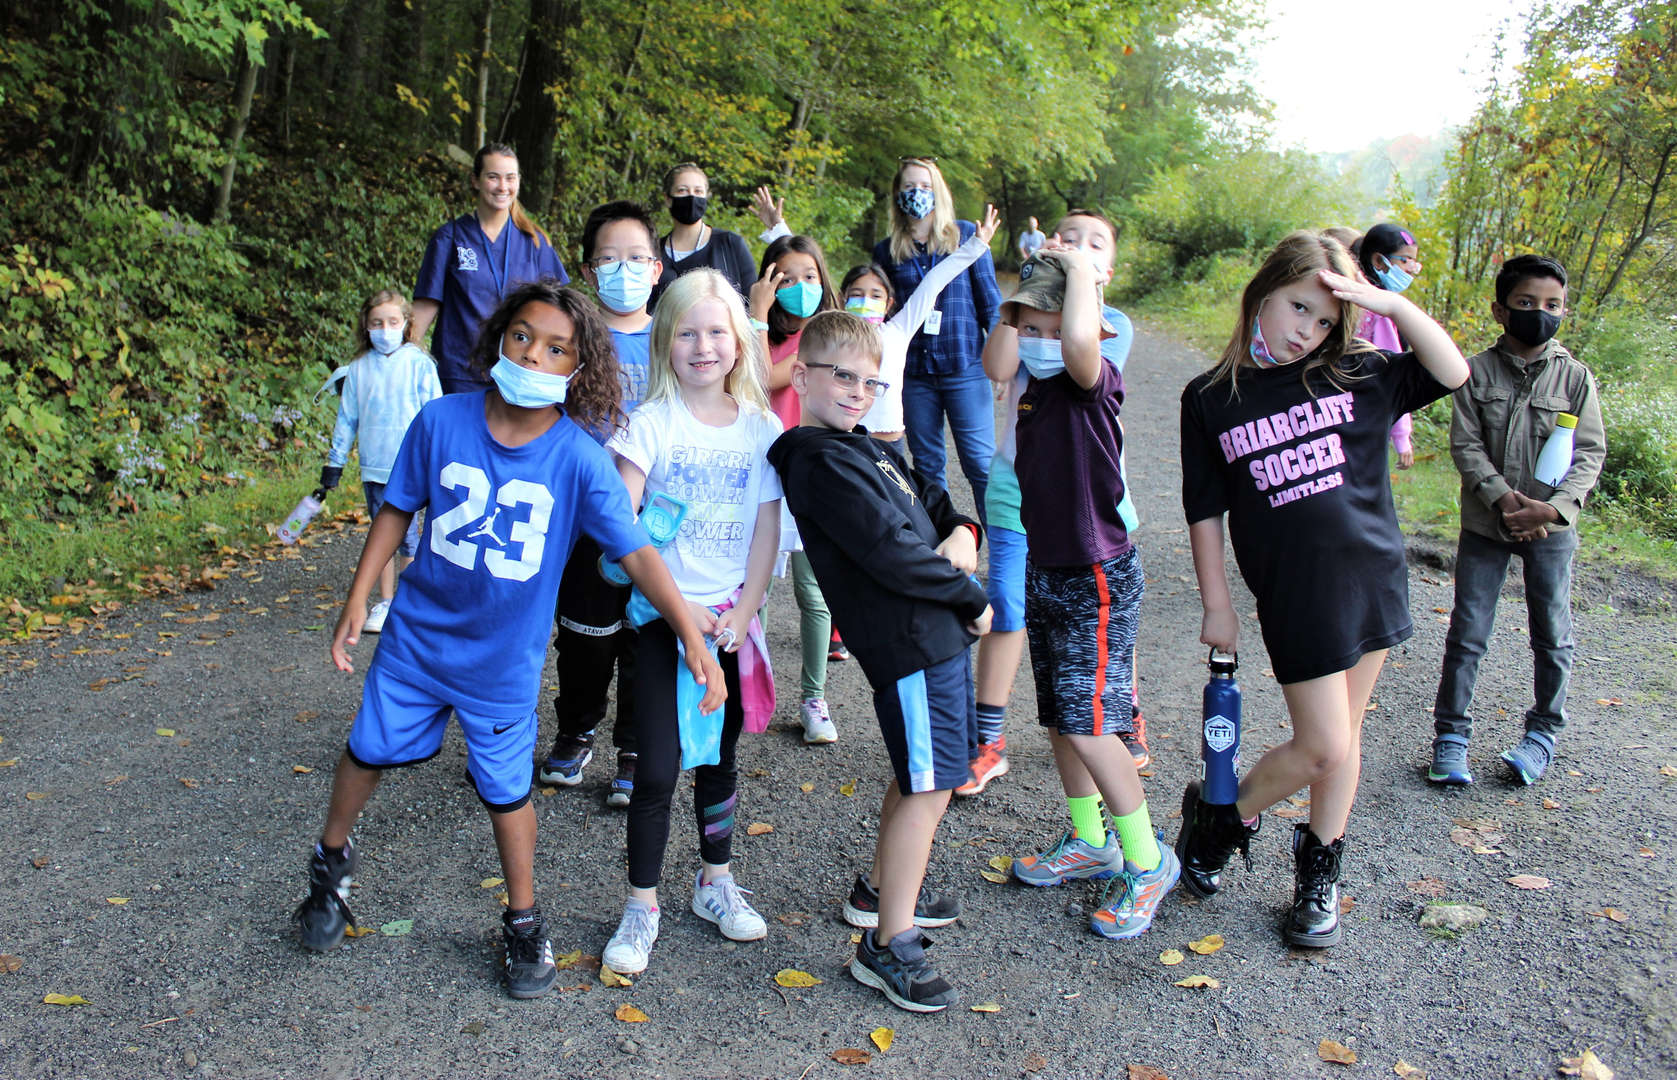 Pocantico Hills students strike a pose while on the trail at Rockefeller Park.